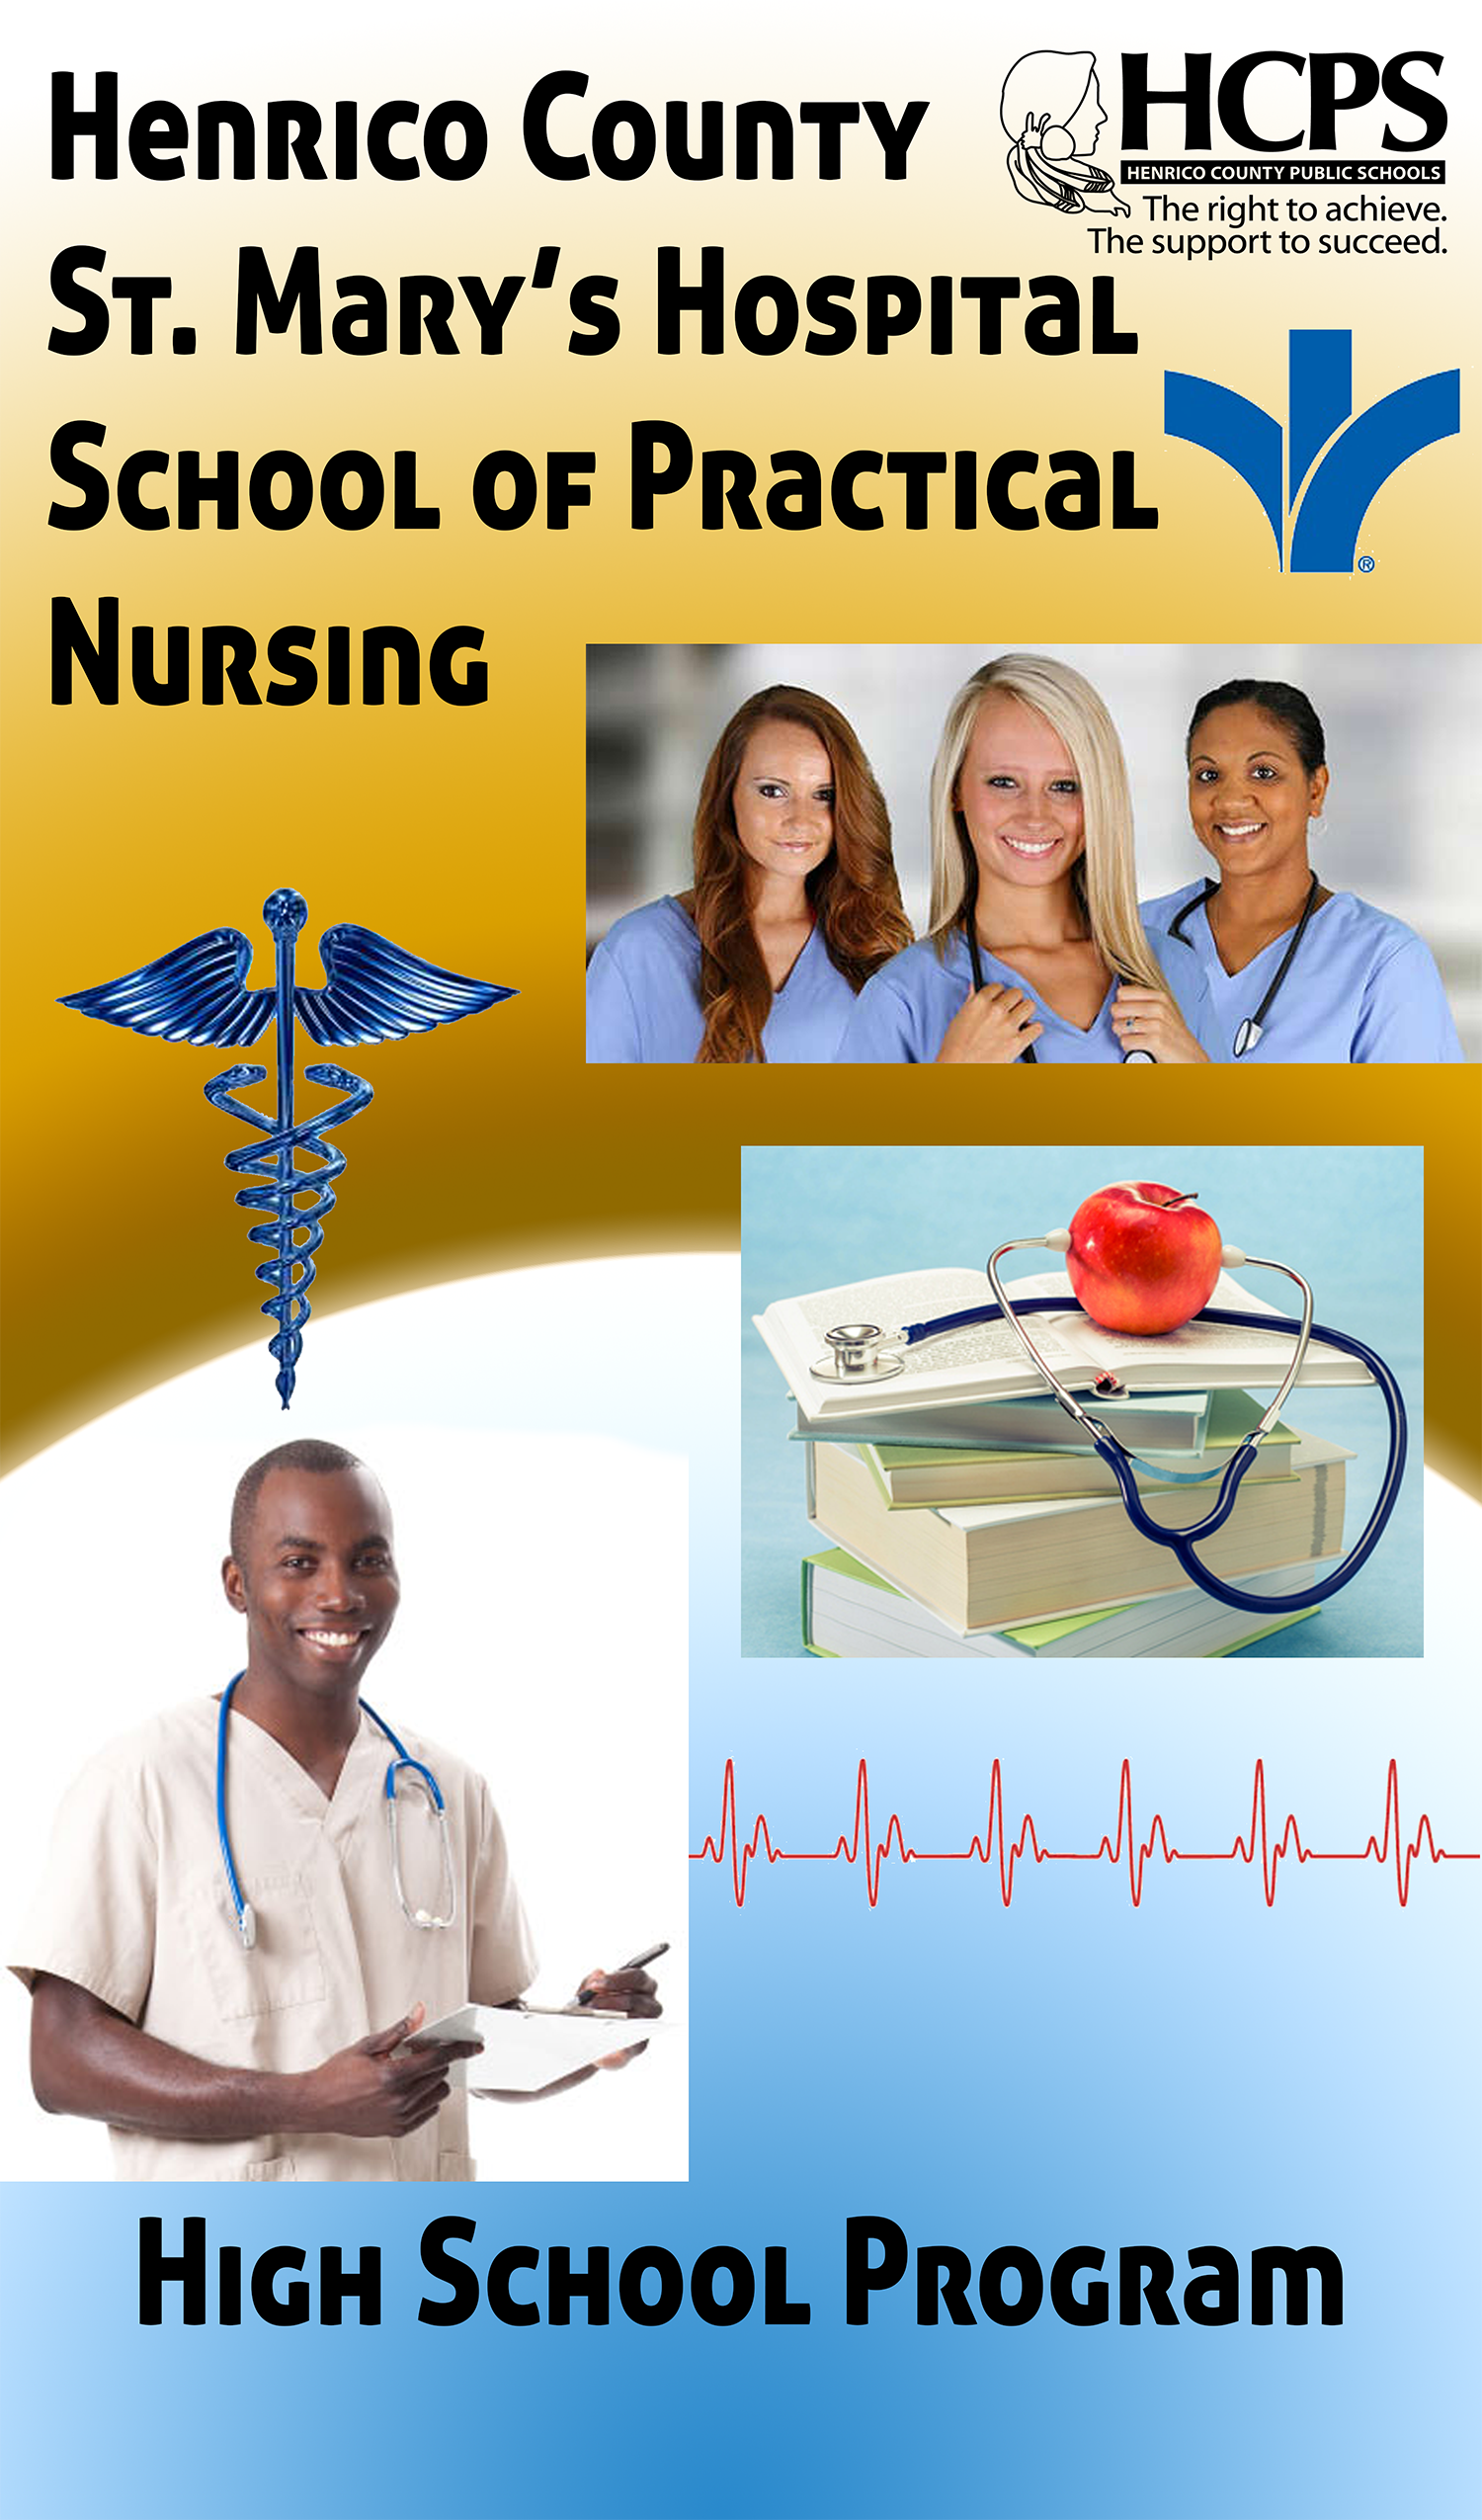 What coursework/practicals are required to become an RN?